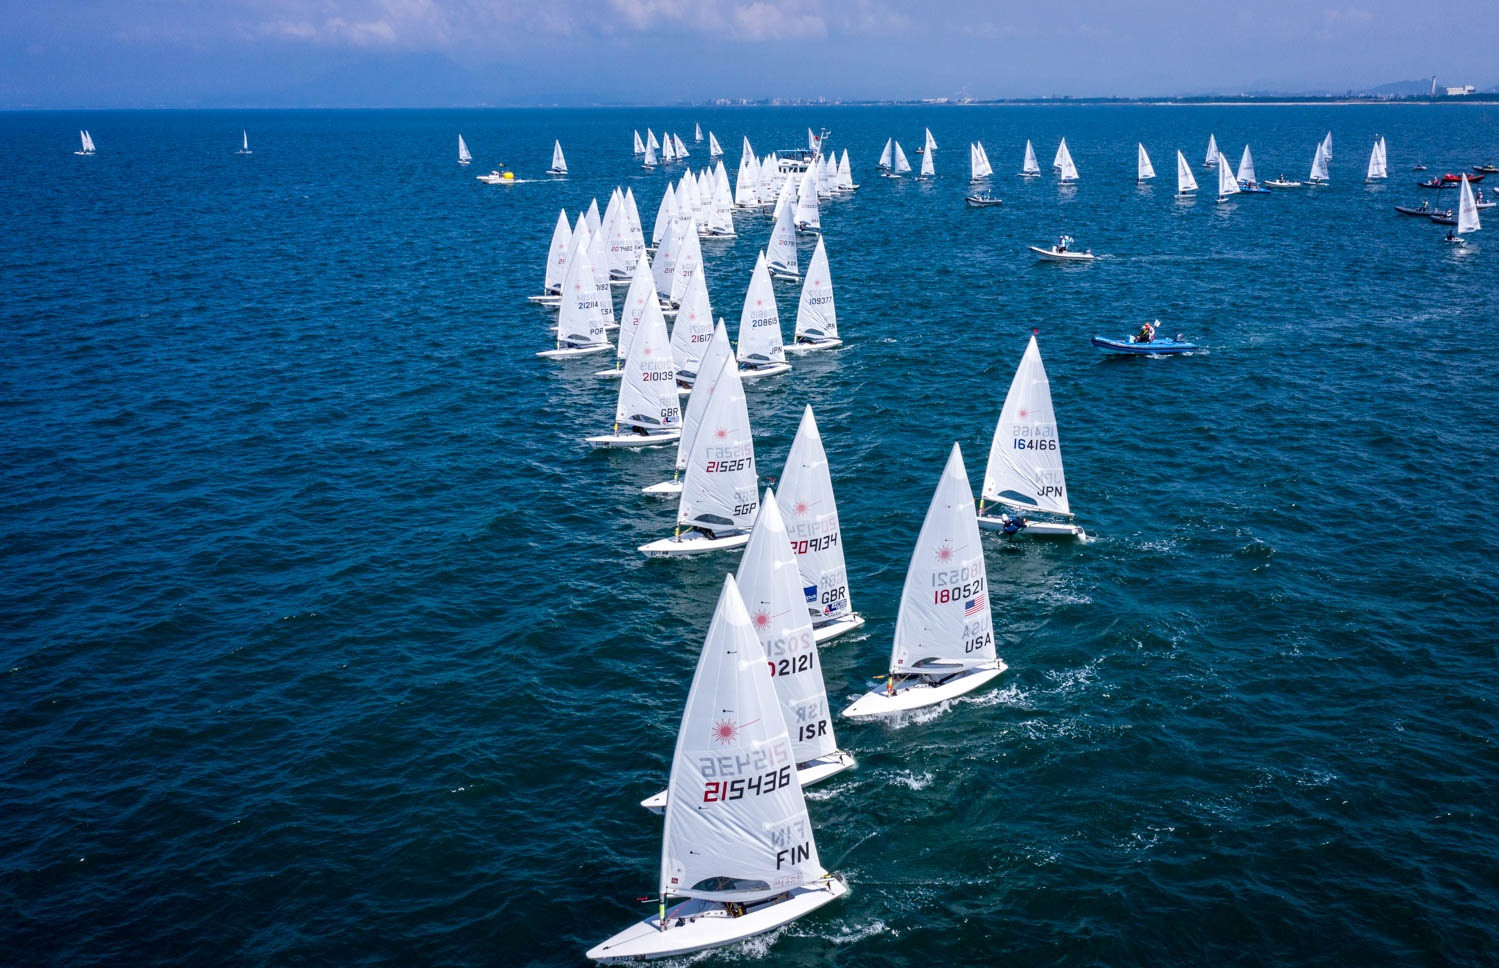 A total of 159 sailors from 57 countries are competing in the event ©Junichi Hirai/Bulkhead Magazine Japan